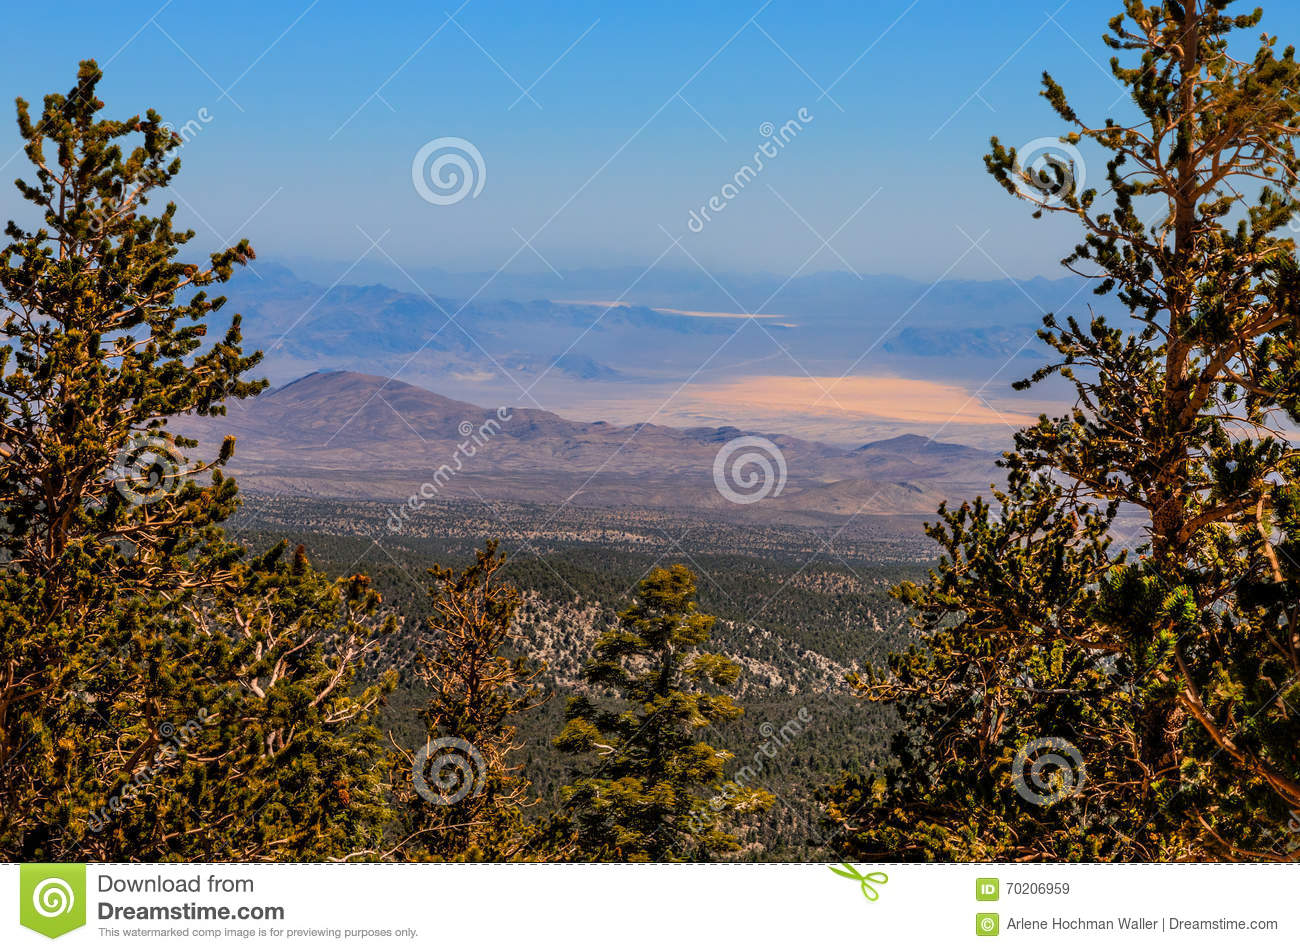 NV-Humboldt-Toiyabe National Forest-Spring Mountains